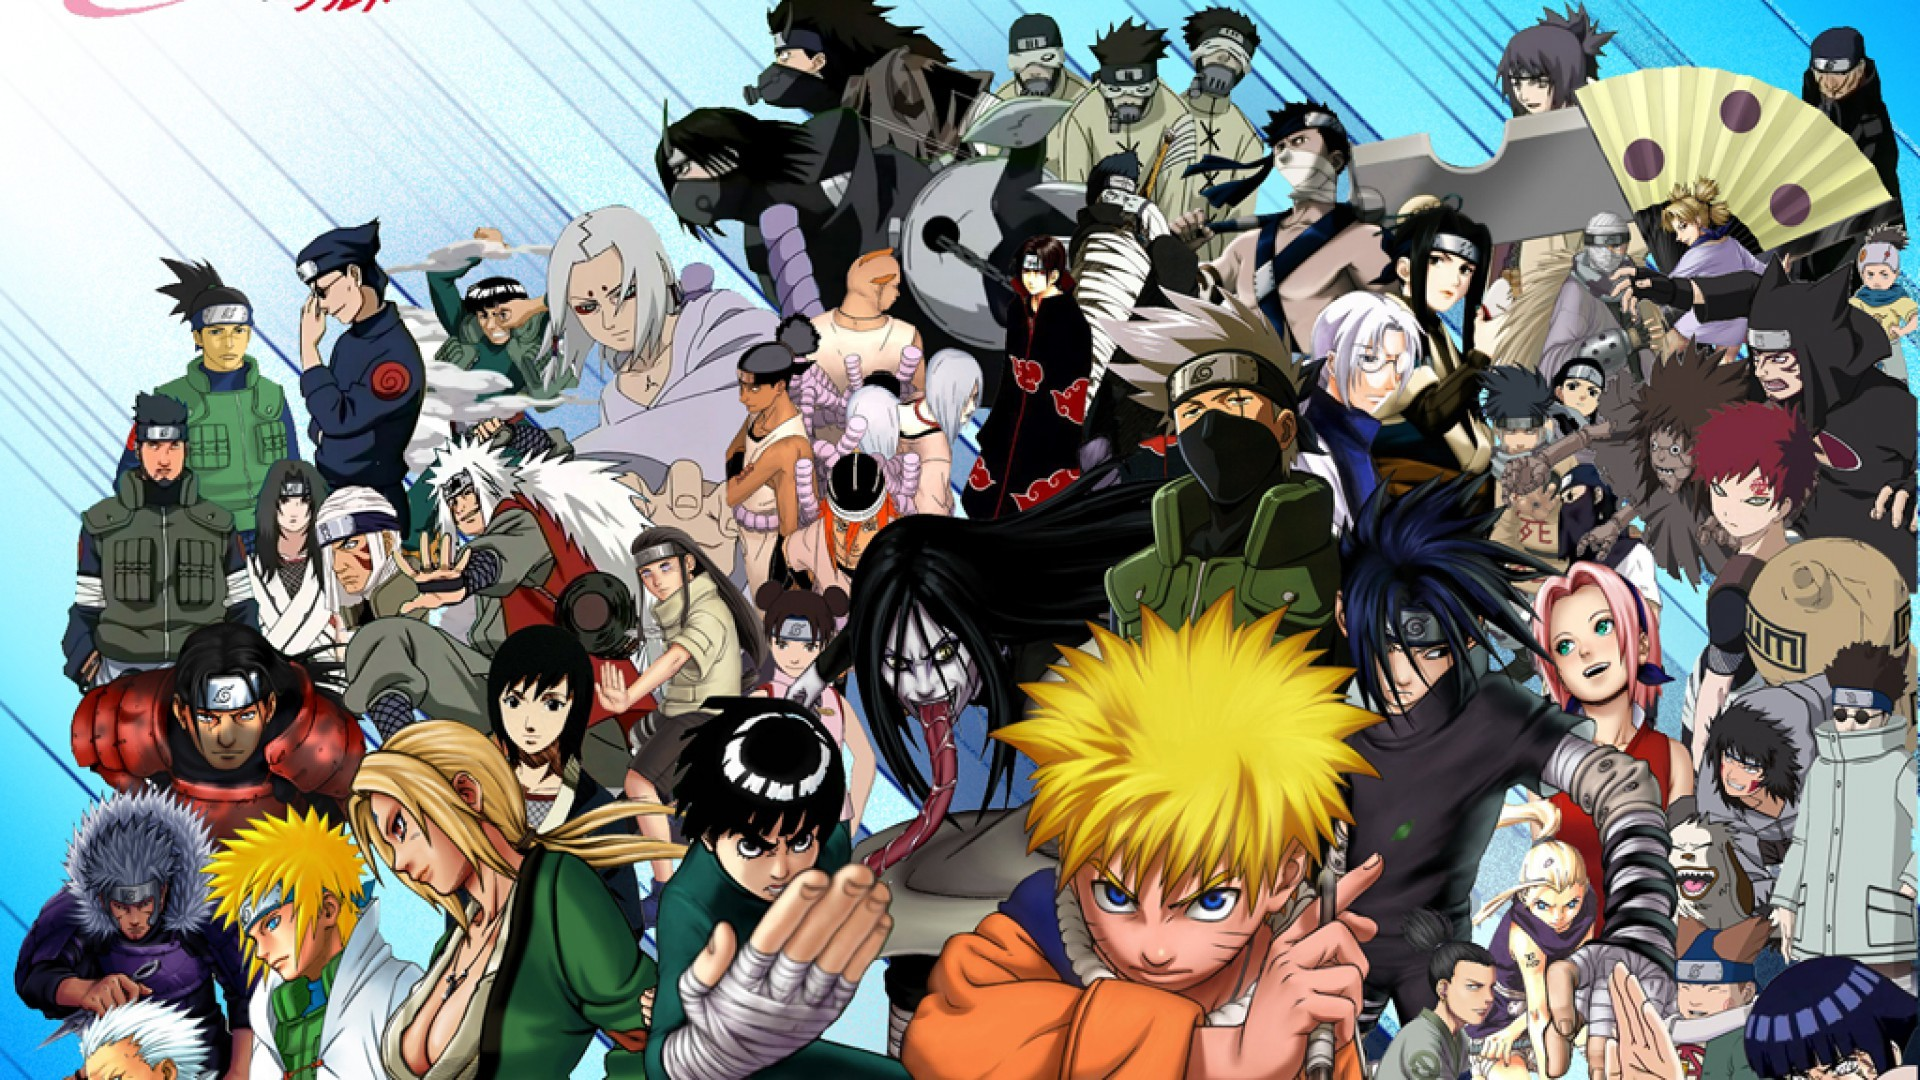 Best Wallpaper Naruto Ipad Air - 931306-naruto-wallpapers-1920x1080-1920x1080-iphone  Collection_955617.jpg